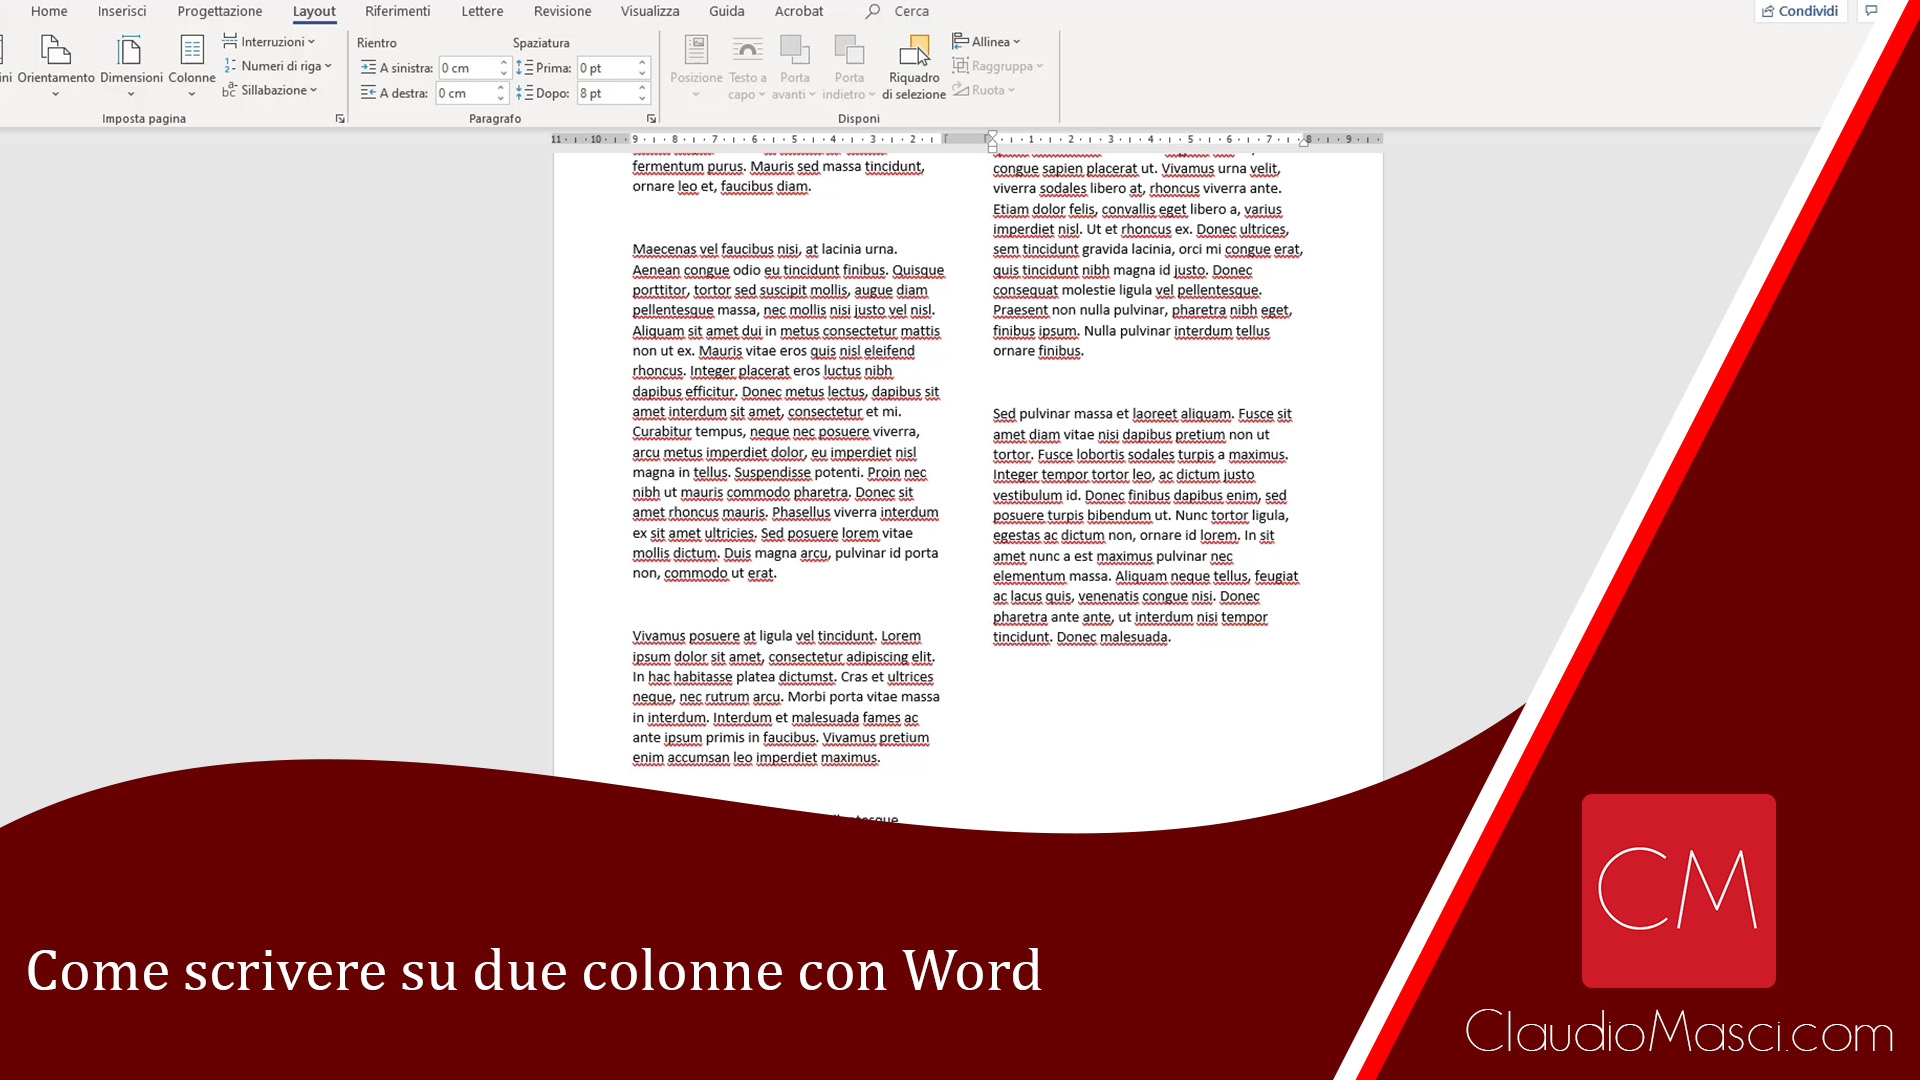 Come scrivere su due colonne con Word